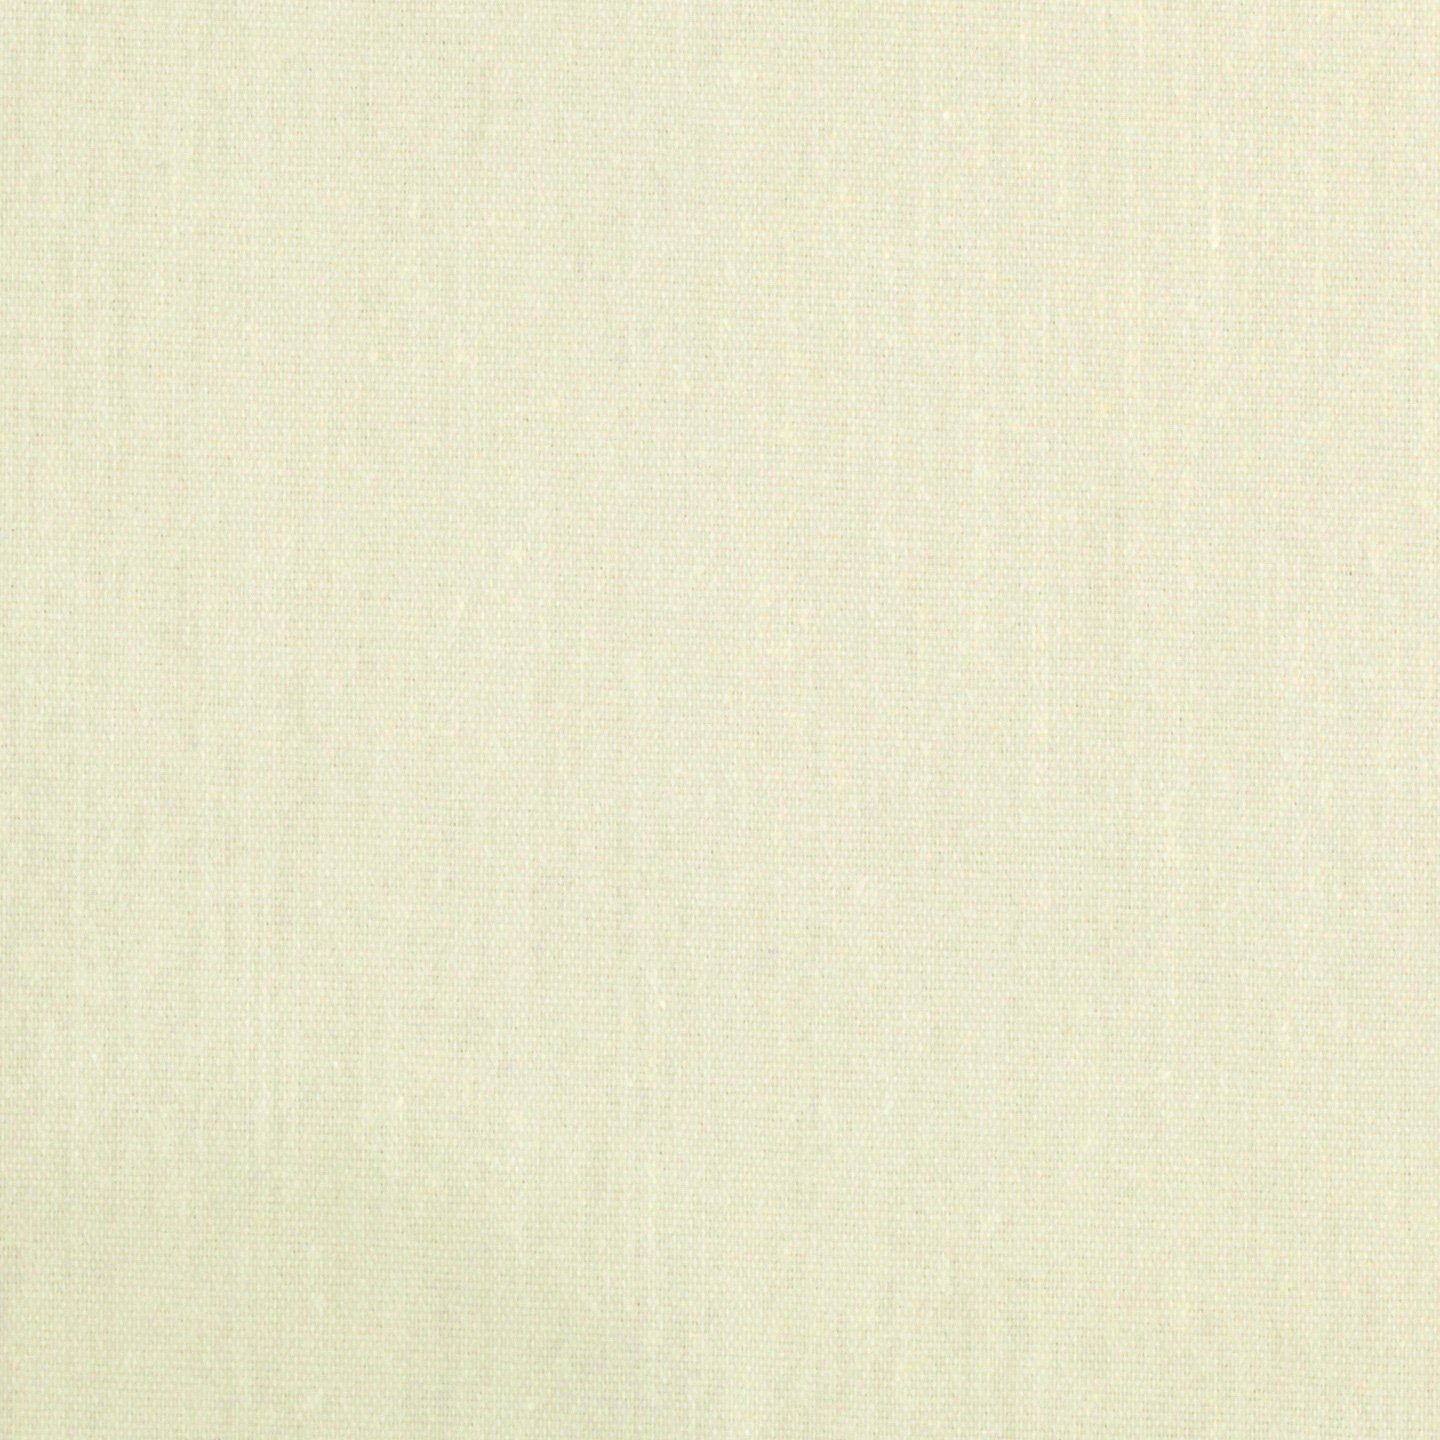 54'' Wide Hanes Drapery Lining Linit Ivory Fabric By The Yard